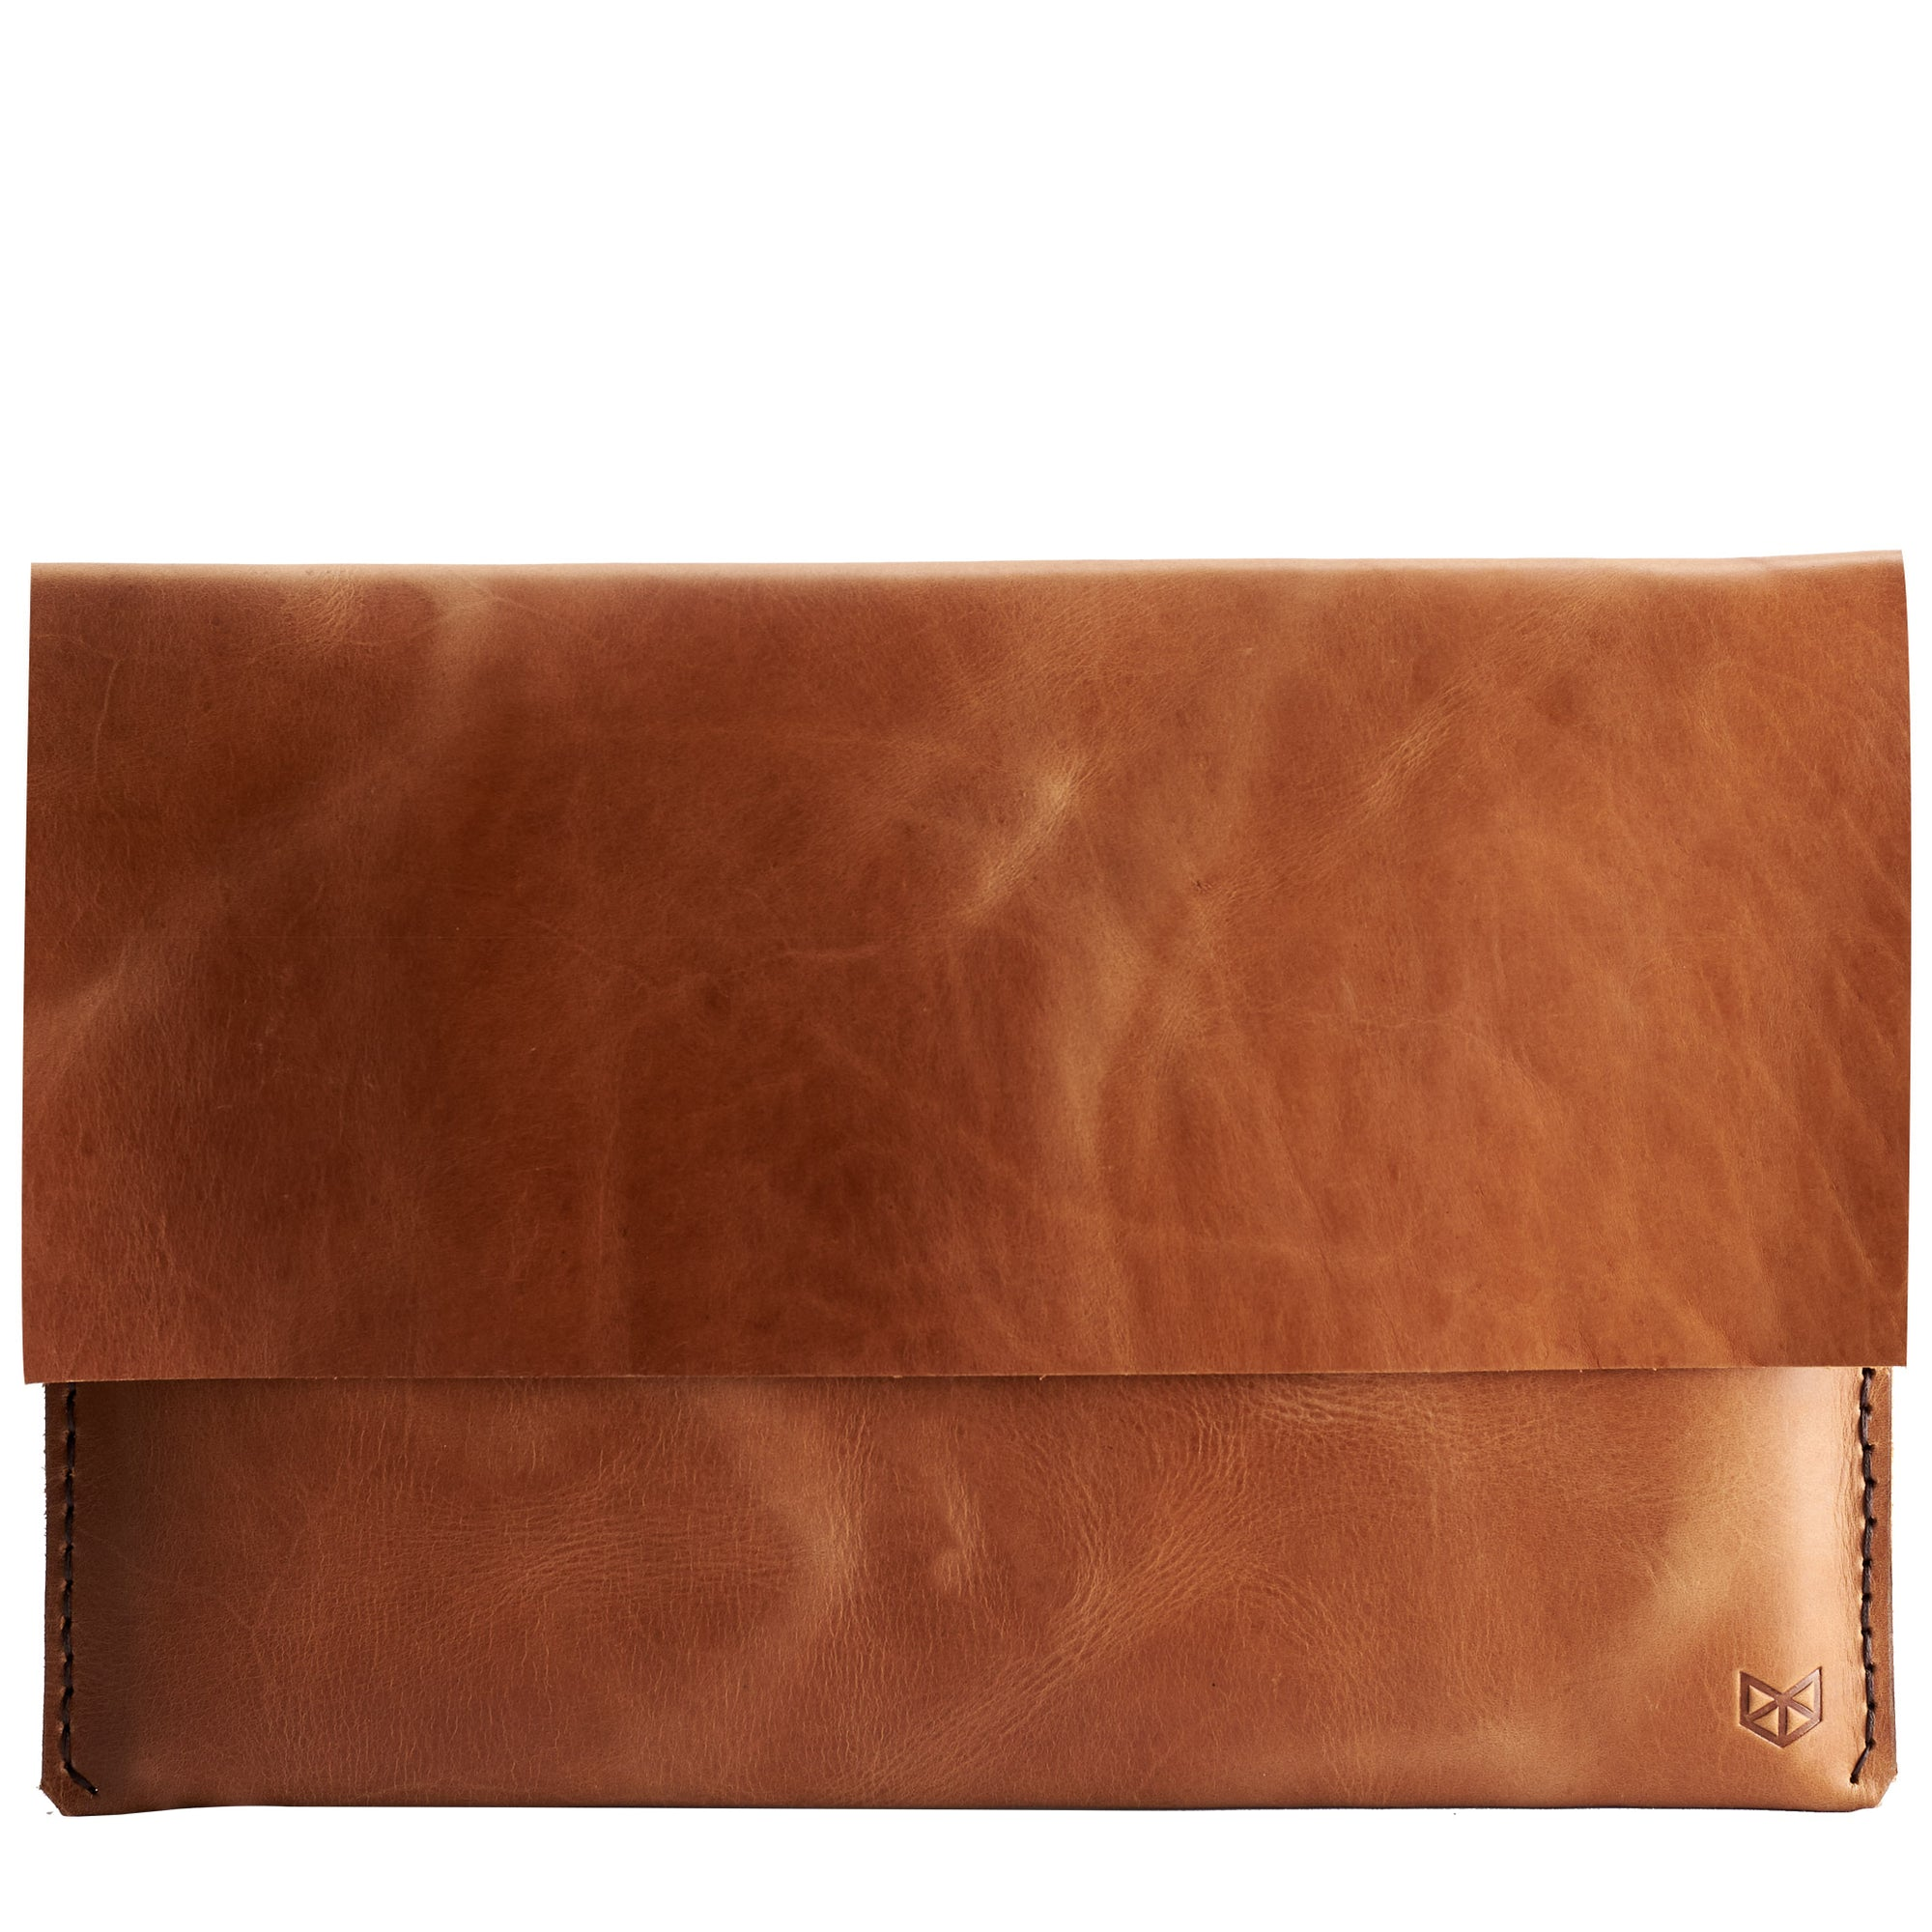 Leather Microsoft Surface  Sleeve Case by Capra Leather